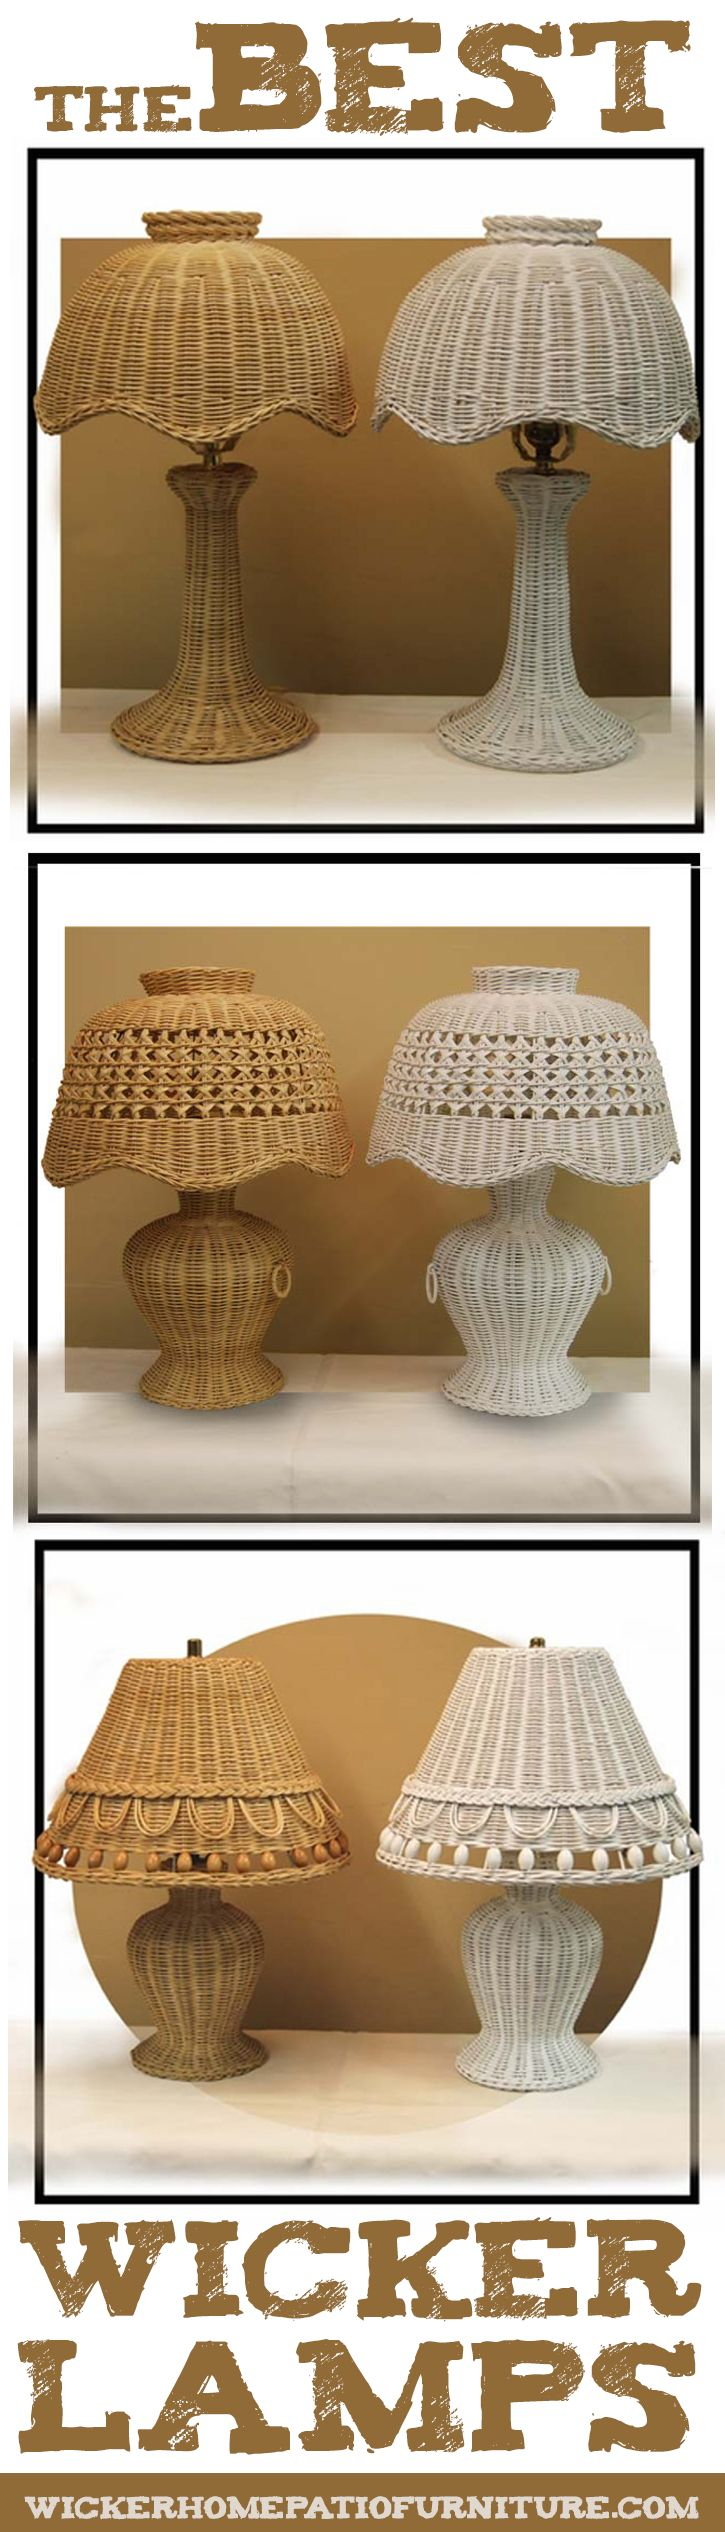 The Best Wicker Lamps